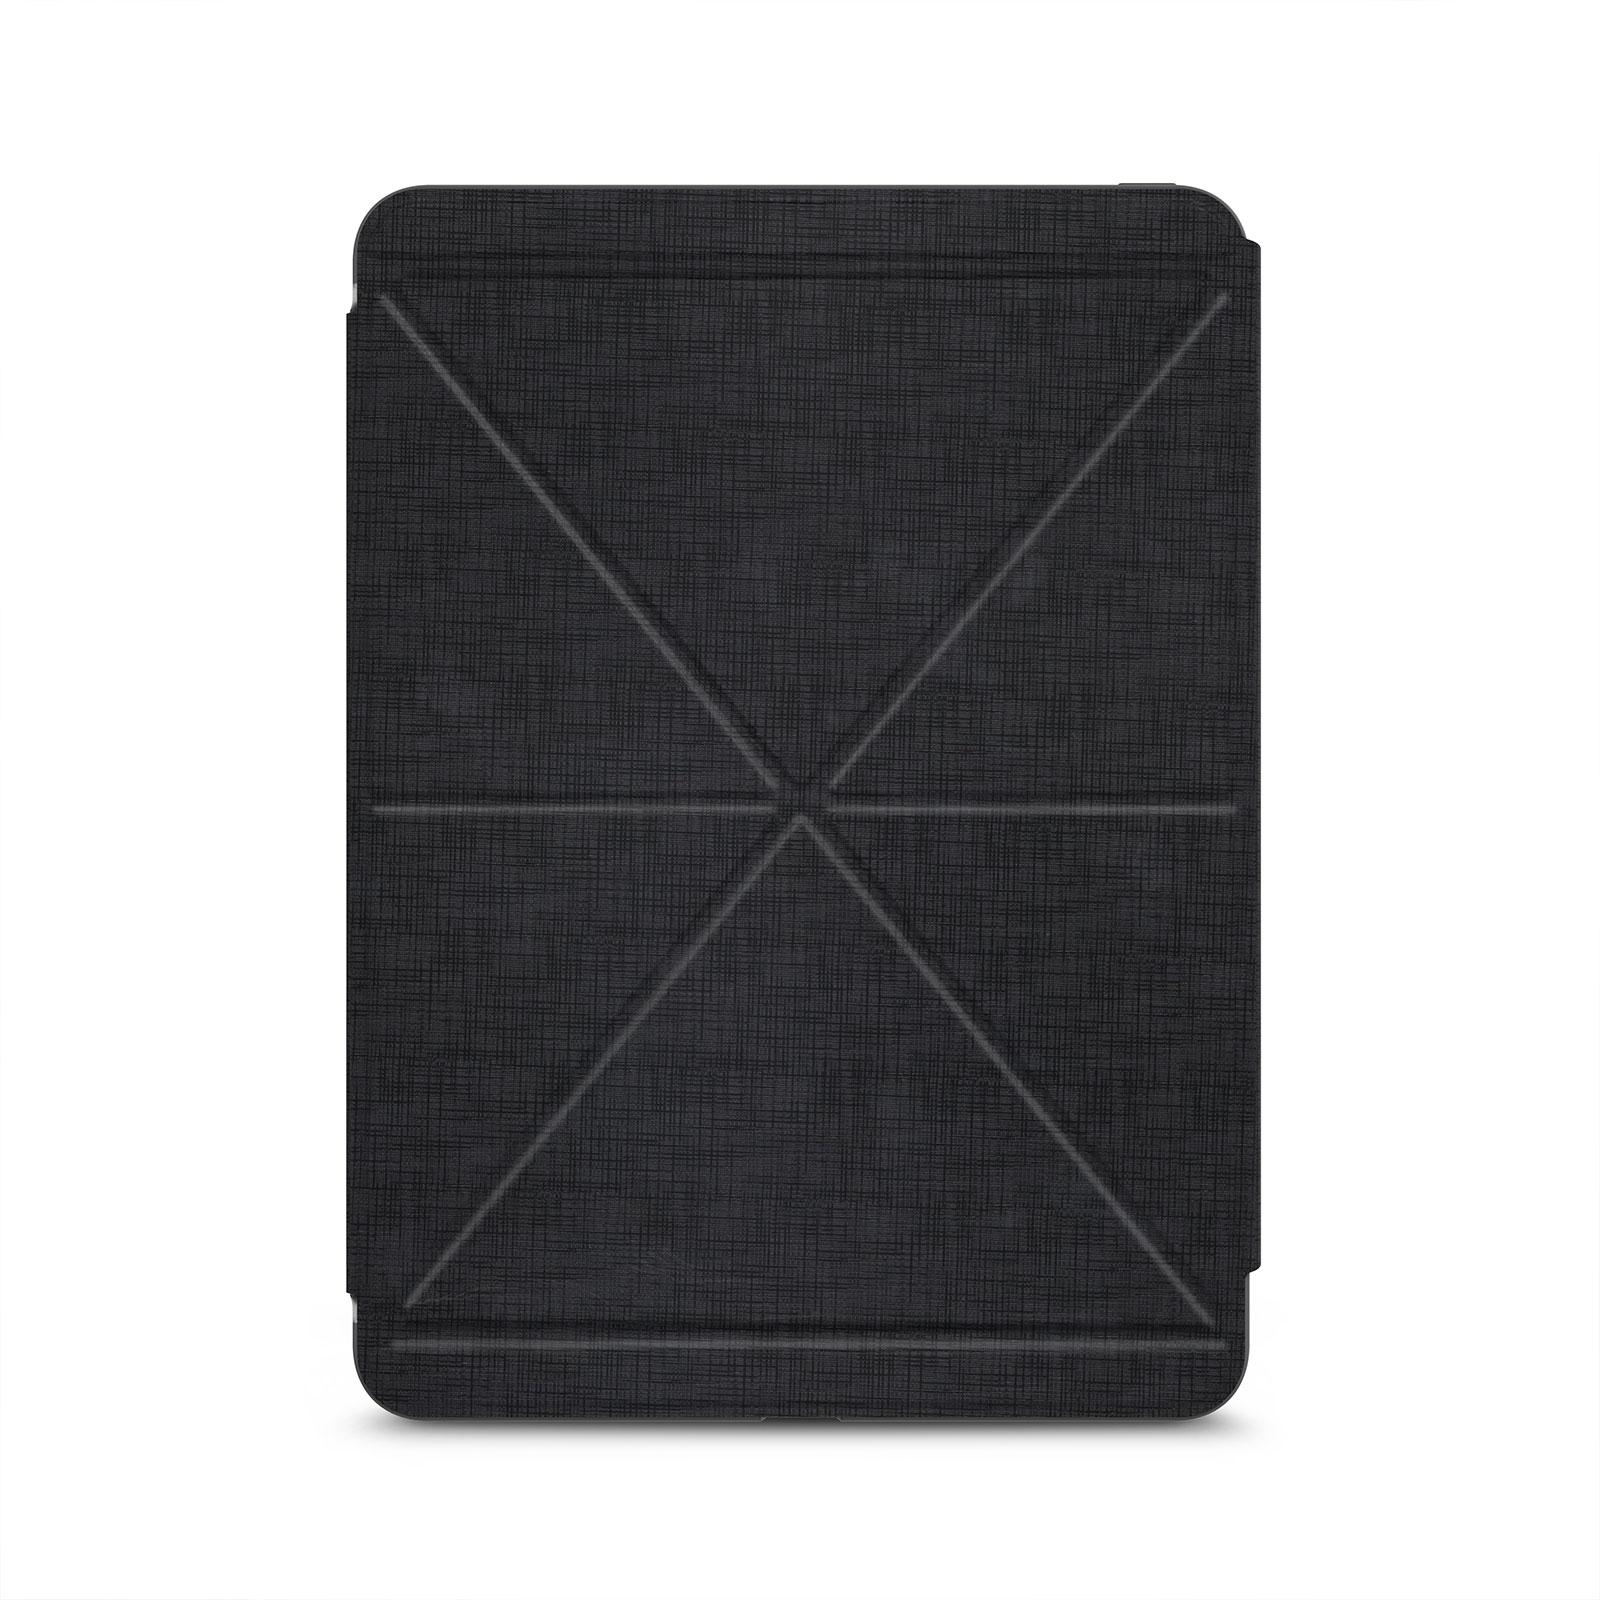 huge discount 0277f 8baa6 VersaCover Case with Folding Cover for iPad Pro 11-inch By Moshi - Metro  Black